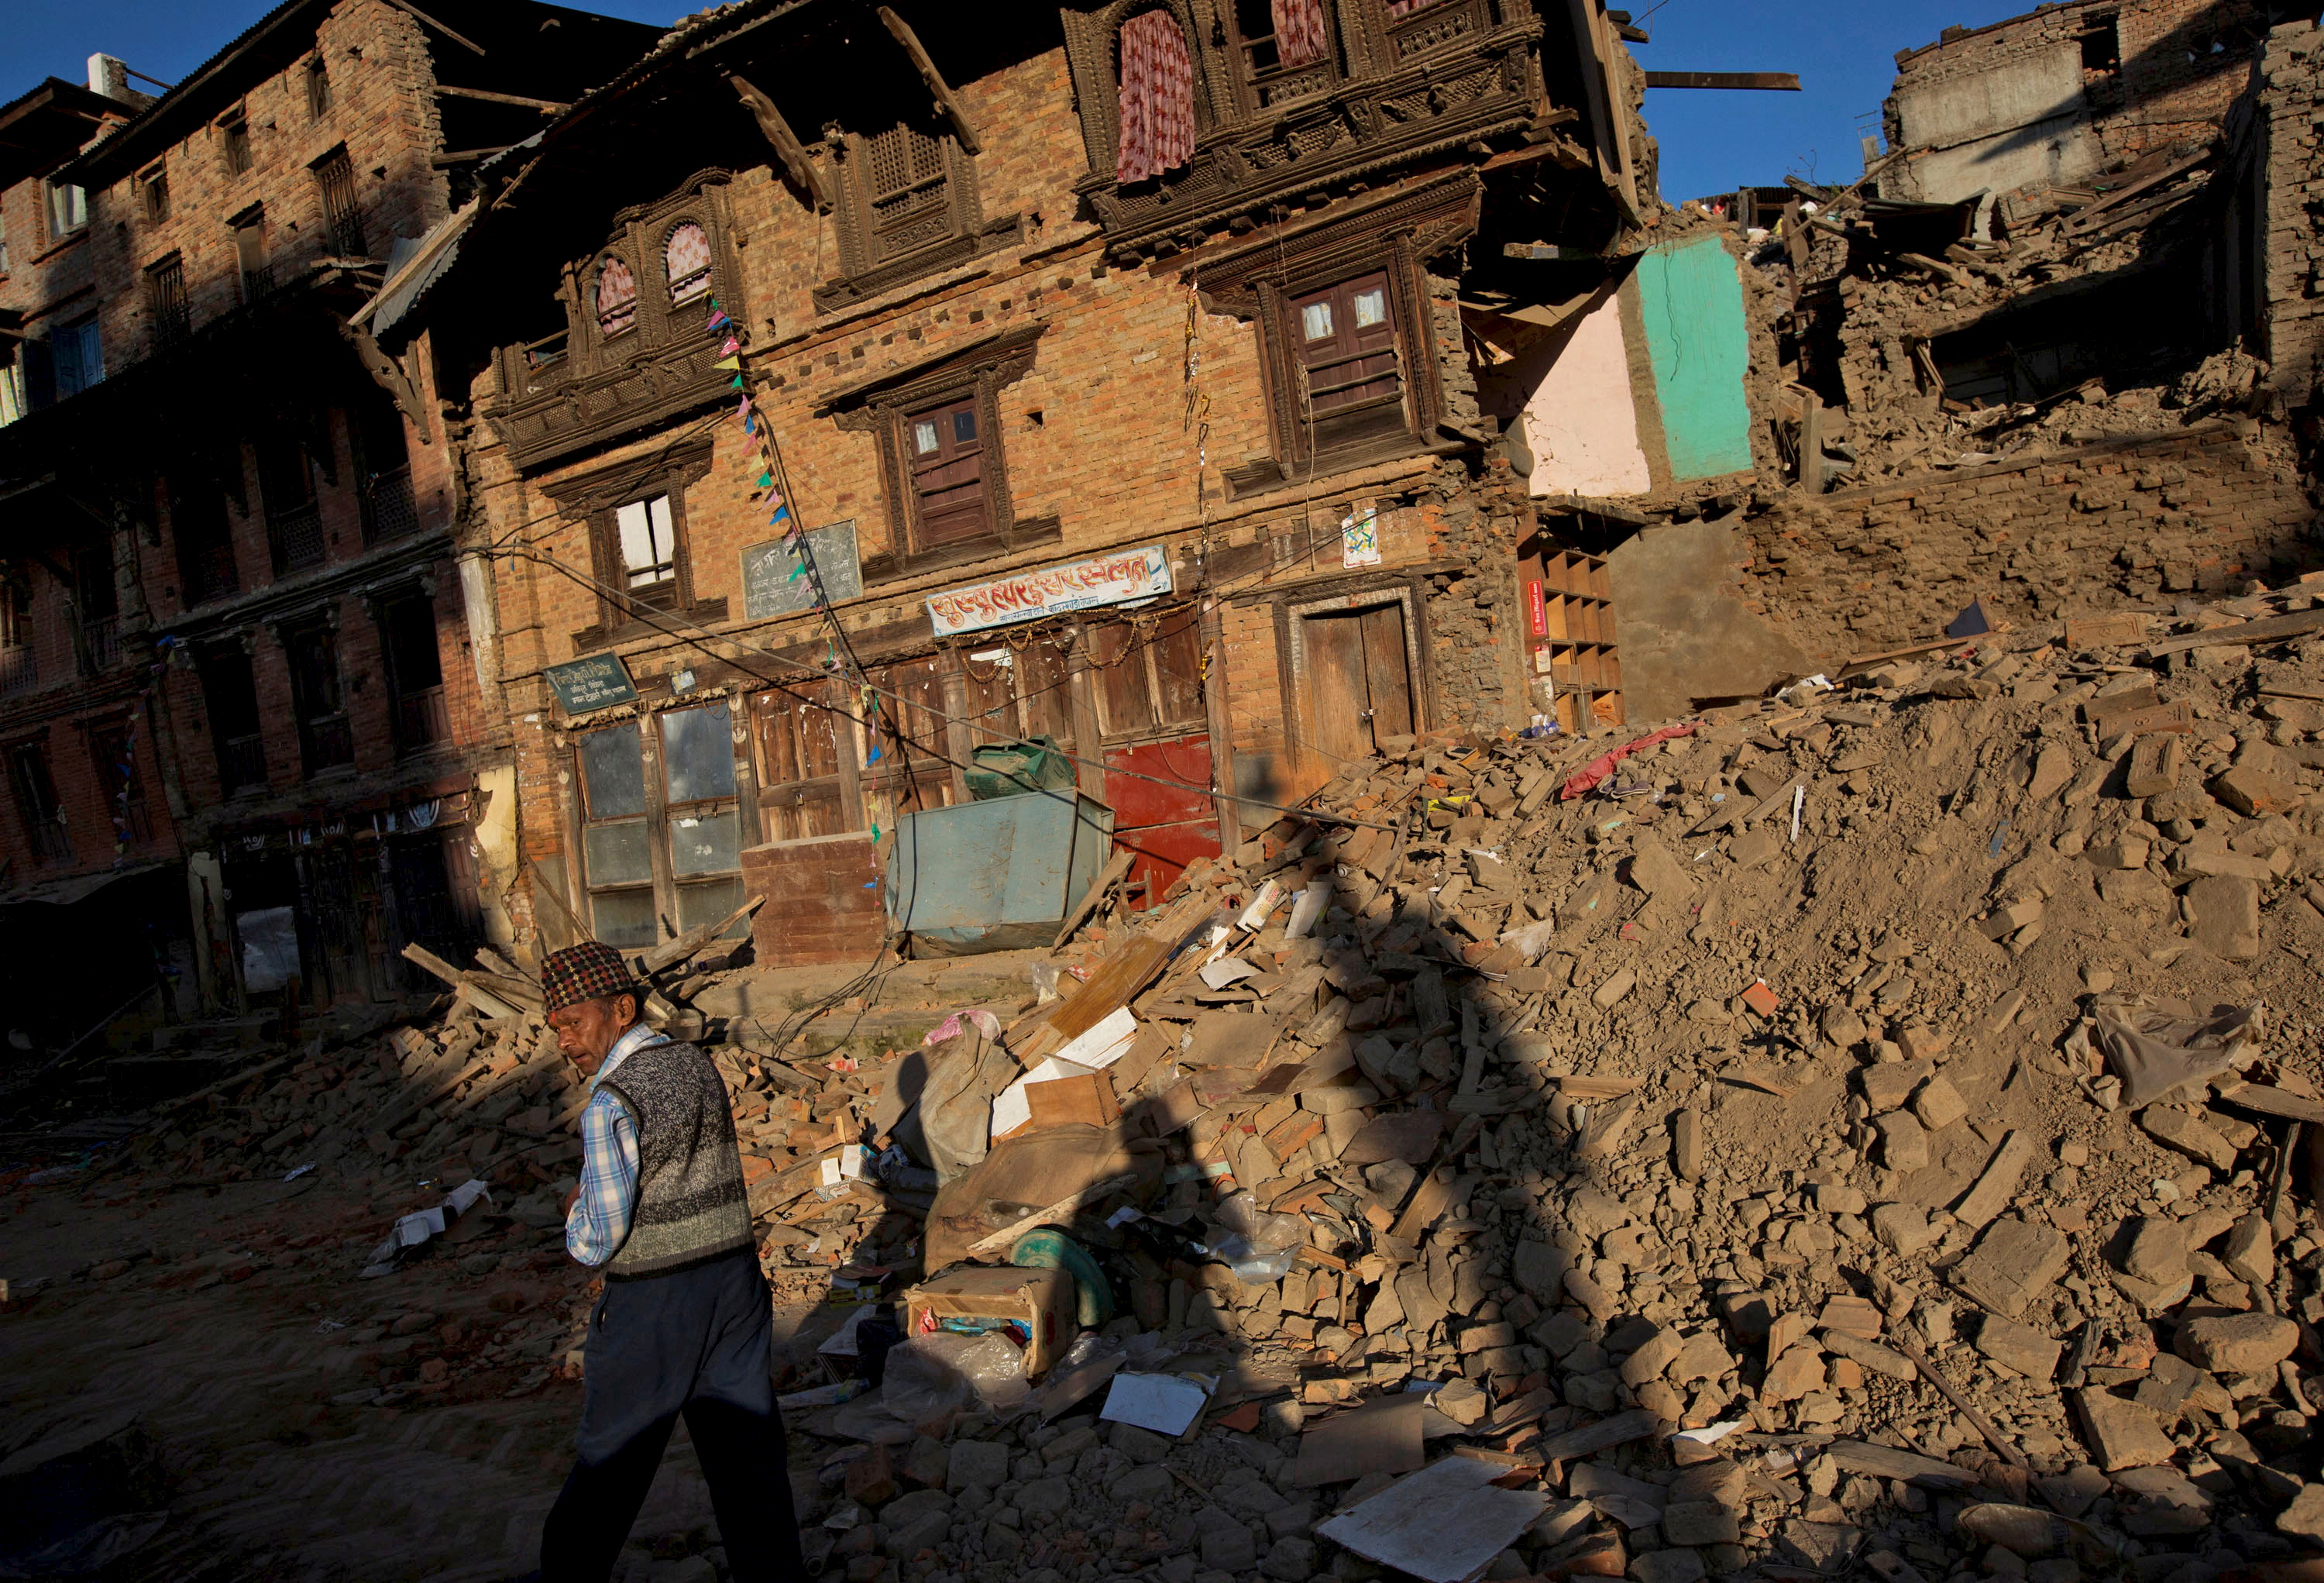 A street of near collapsed traditional houses in Sankhu, on the outskirts of Kathmandu on May 4, 2015